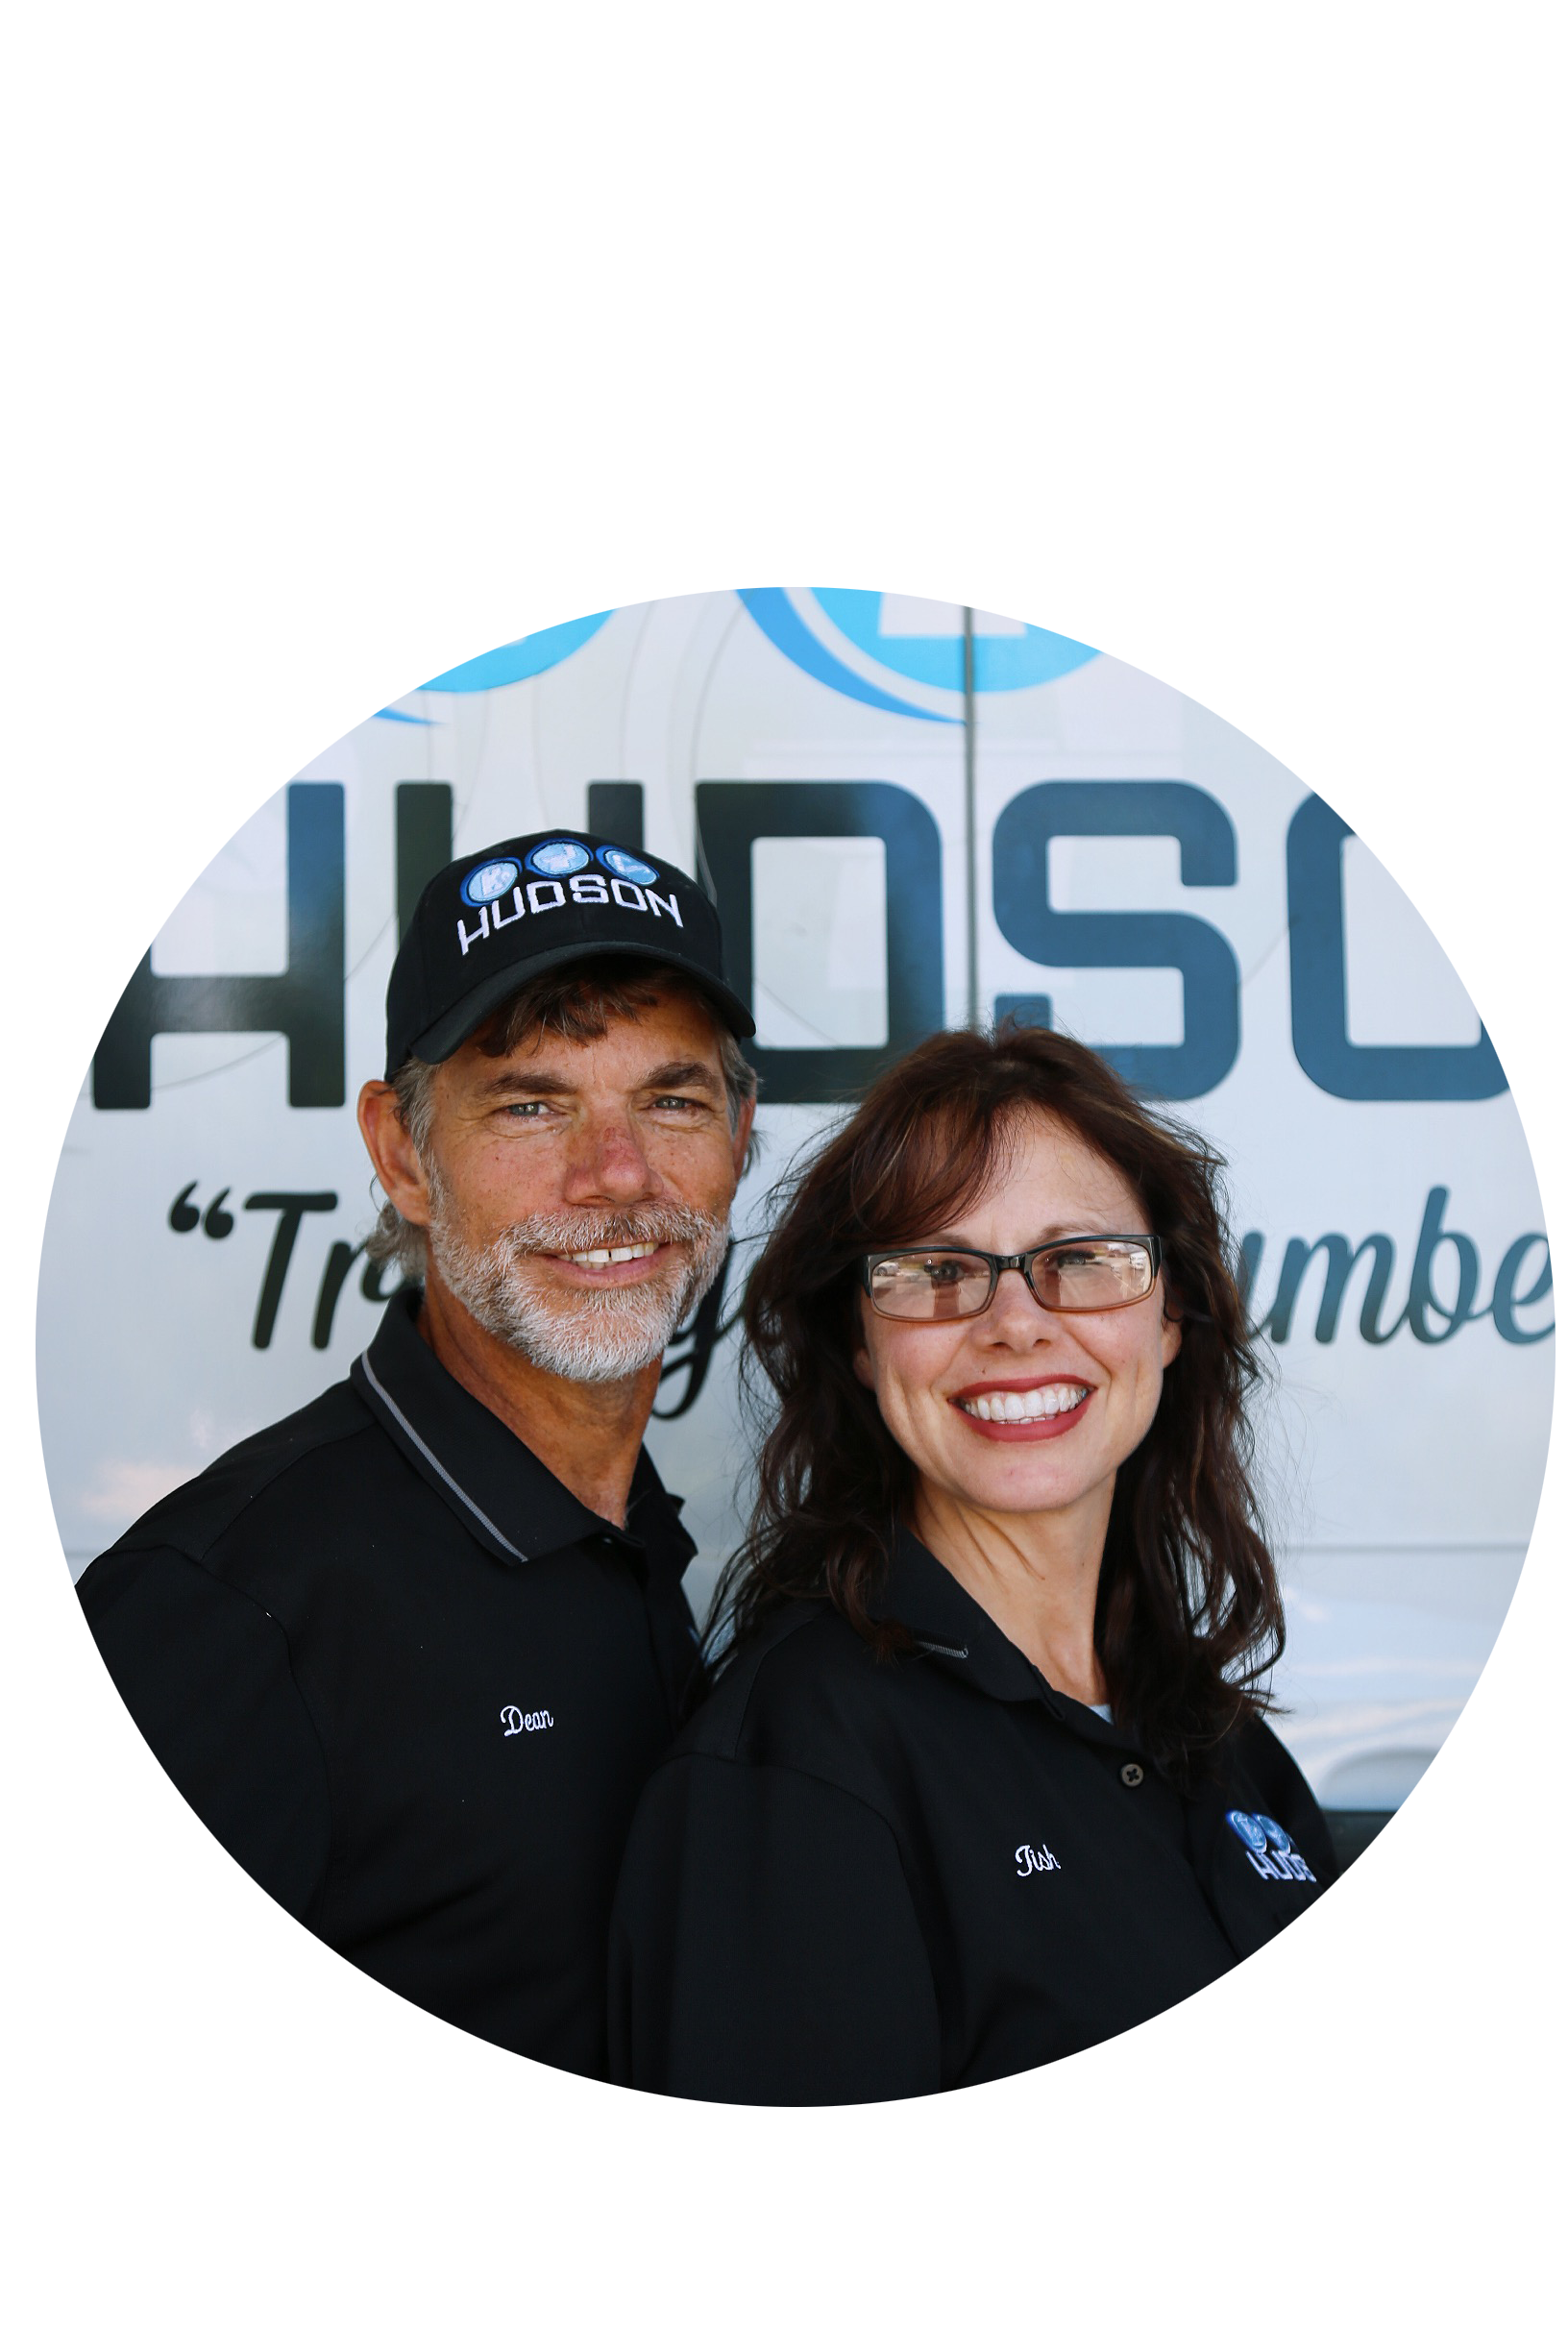 Dean Hudson and Tish Hudson started Hudson Plumbing in Morgan County in 1992.